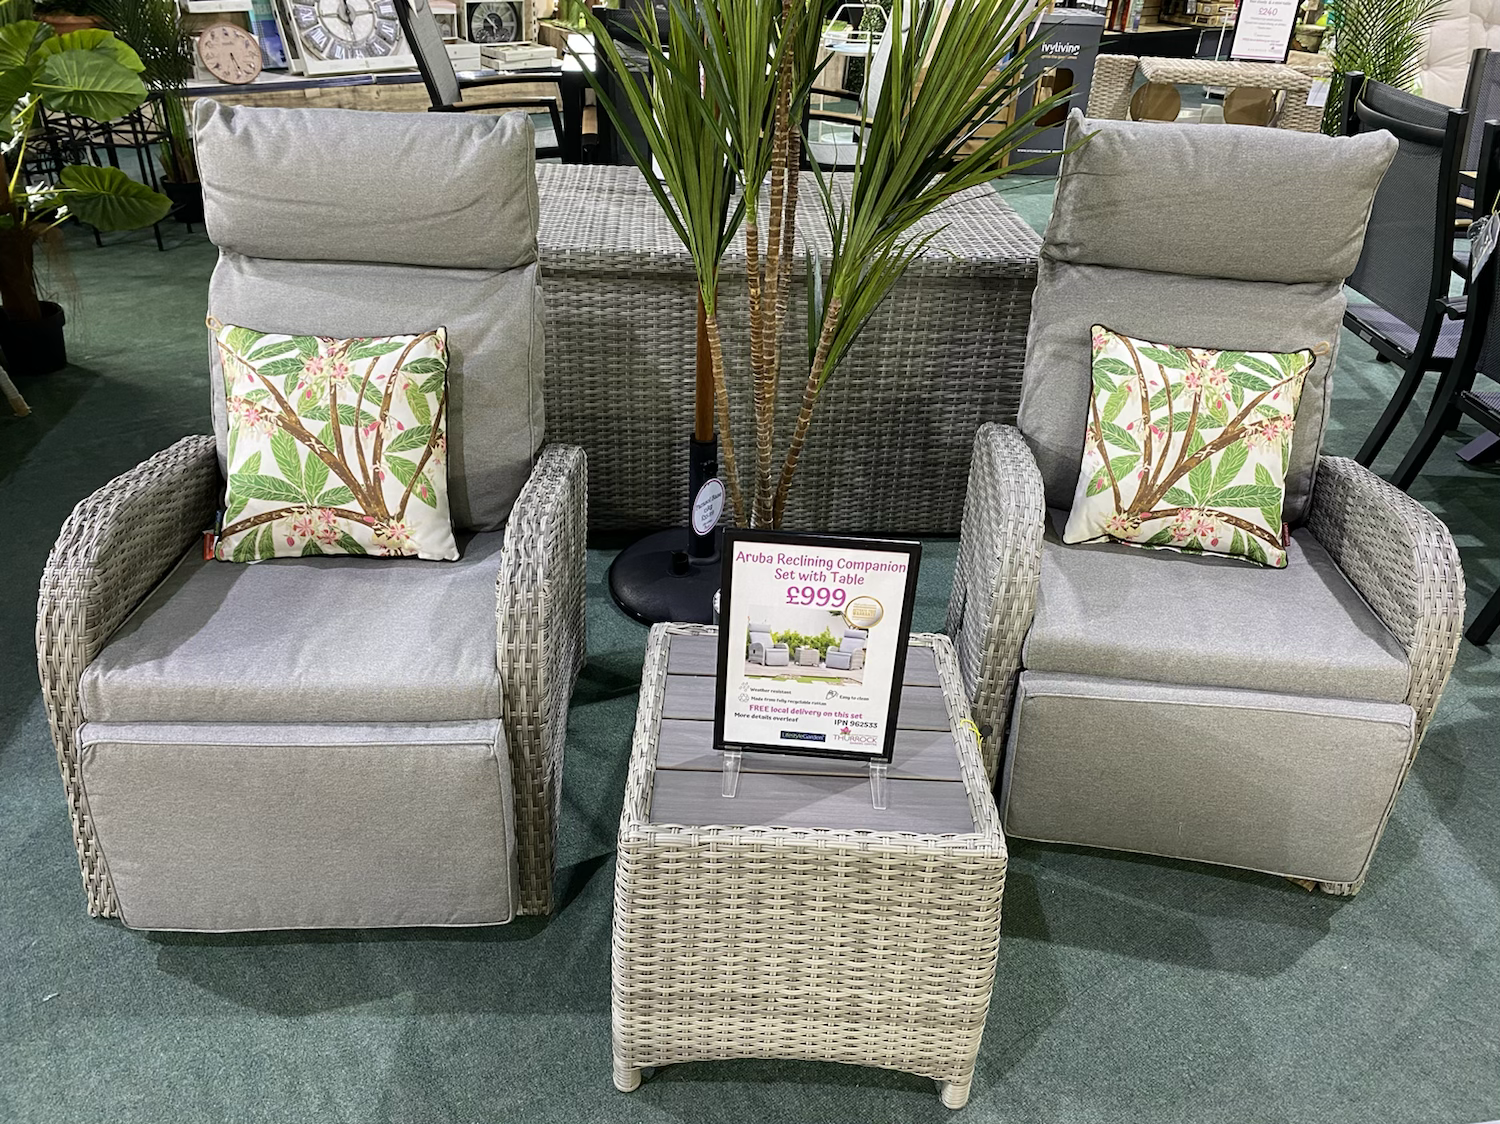 Aruba Reclining Companion Set with Table - £999